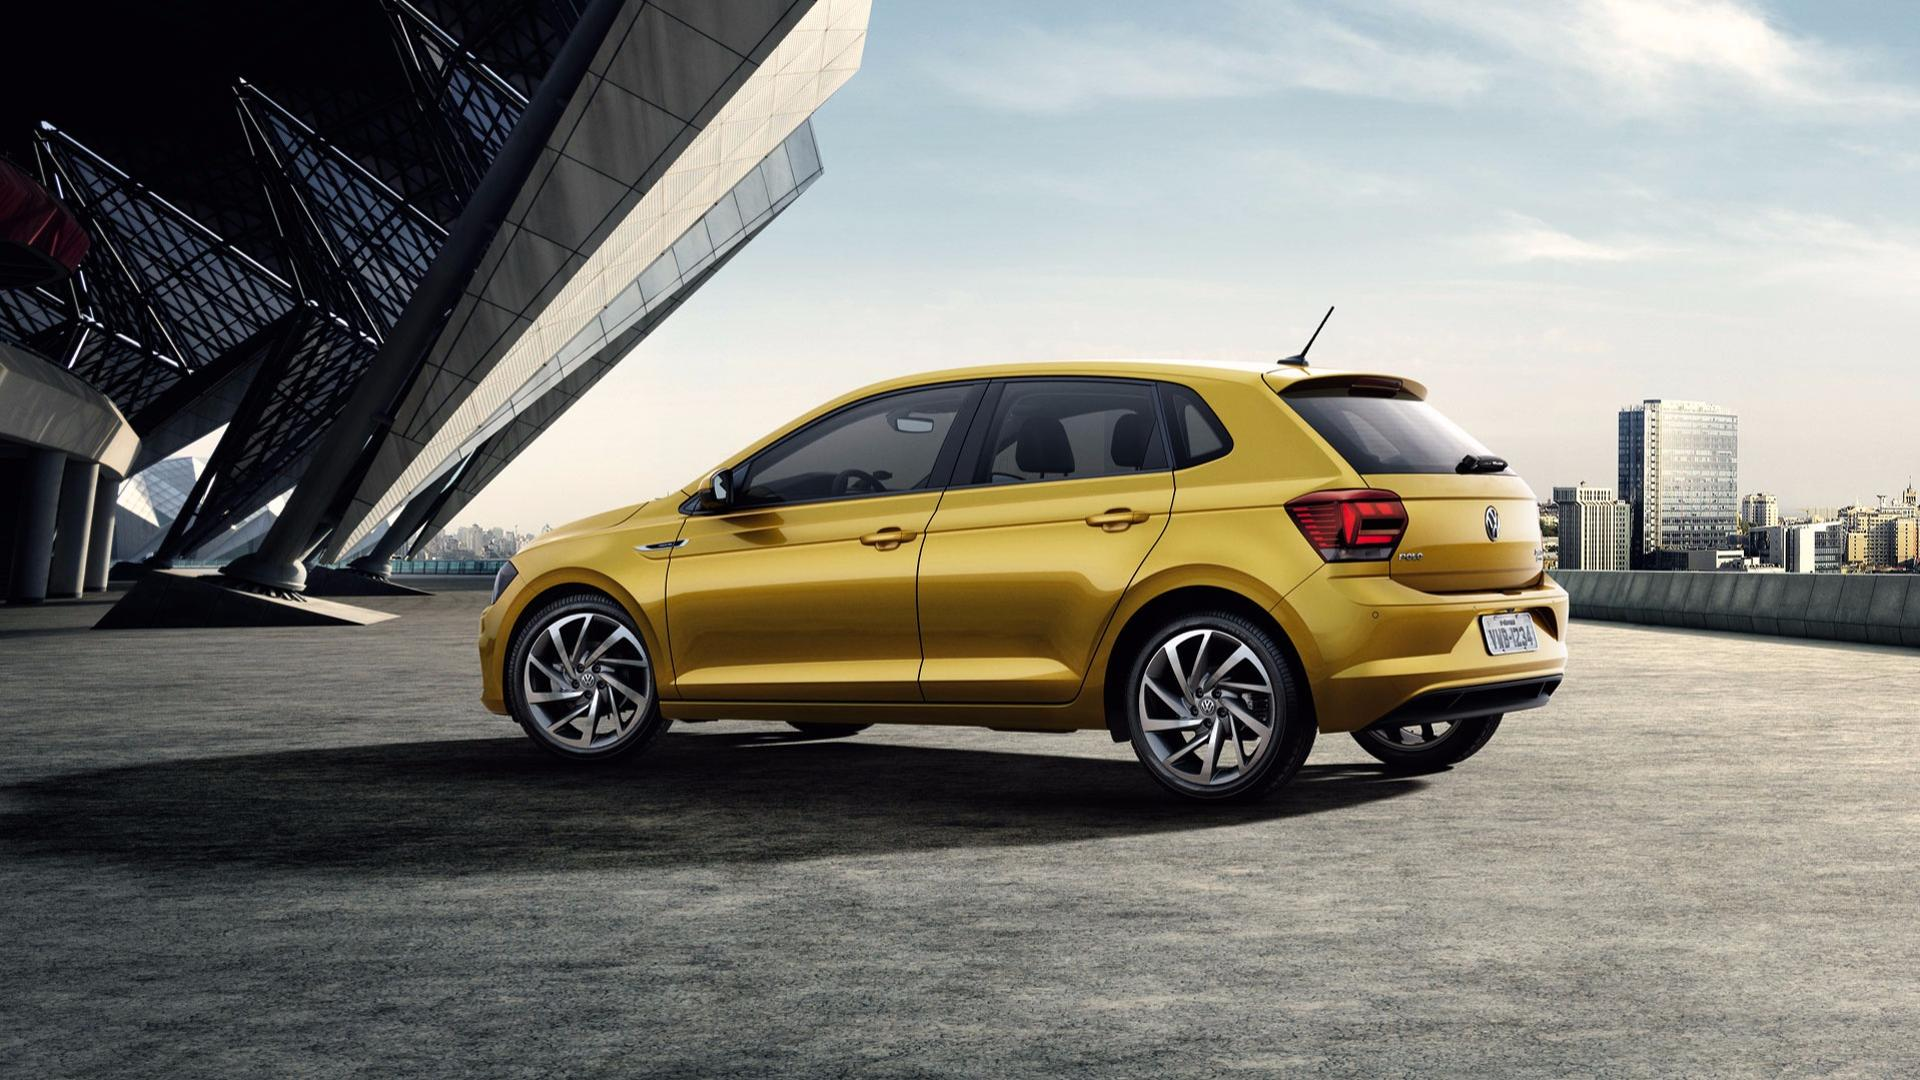 2018 volkswagen polo launched in brazil with 128 hp 1 0 liter turbo autoevolution. Black Bedroom Furniture Sets. Home Design Ideas